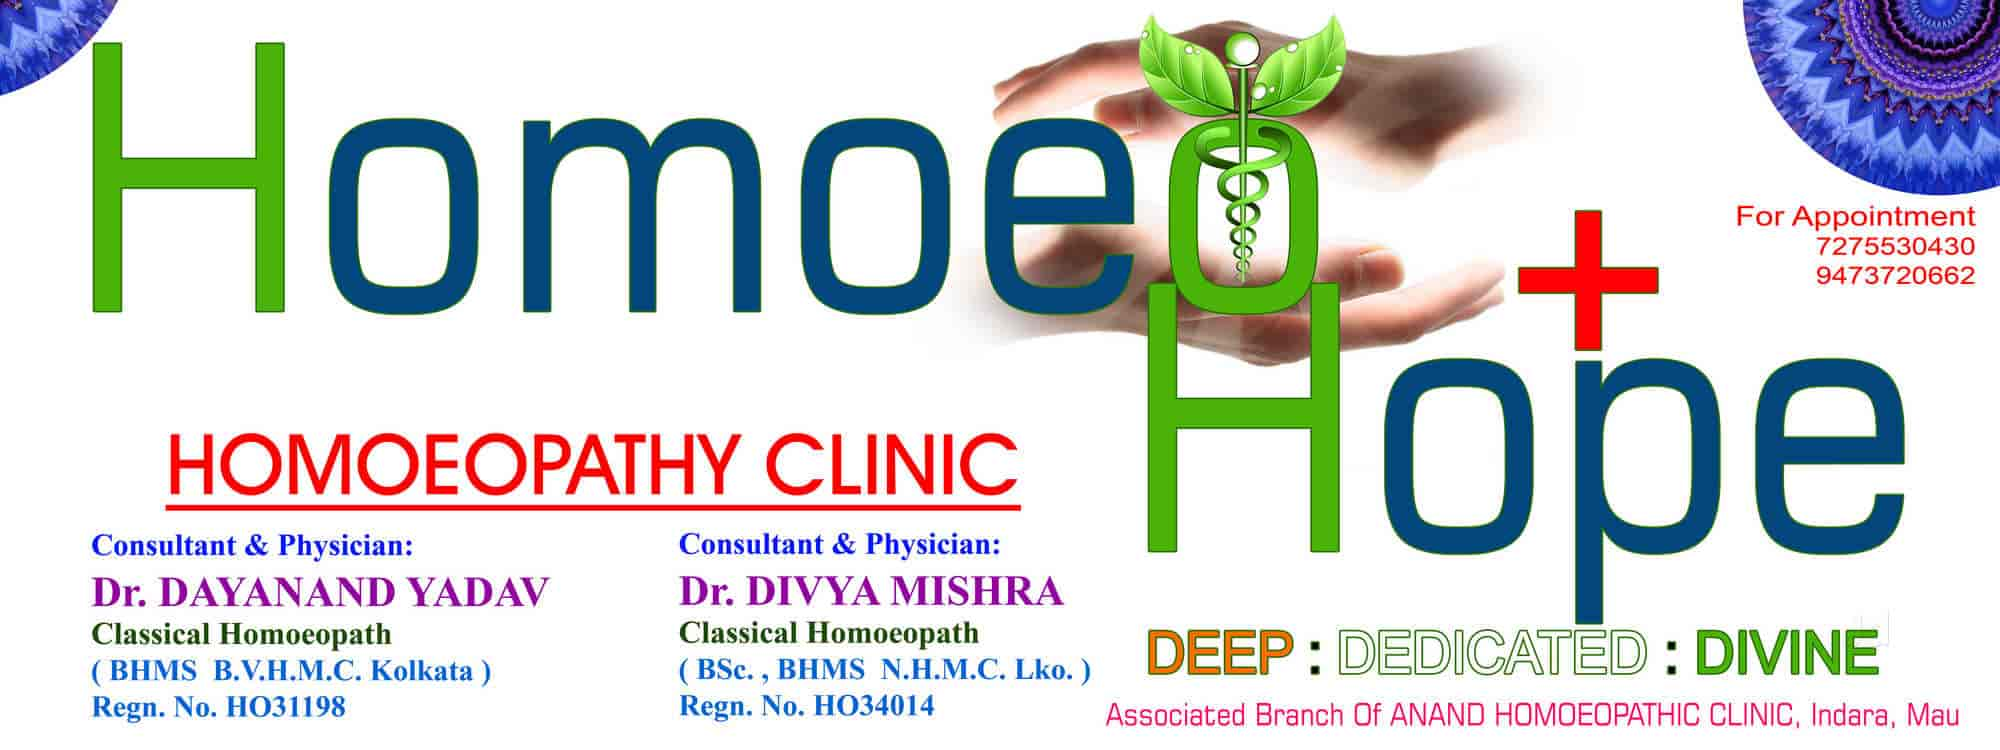 Homoeo hope homoeopathic clinic - Homeopathic Doctors - Book